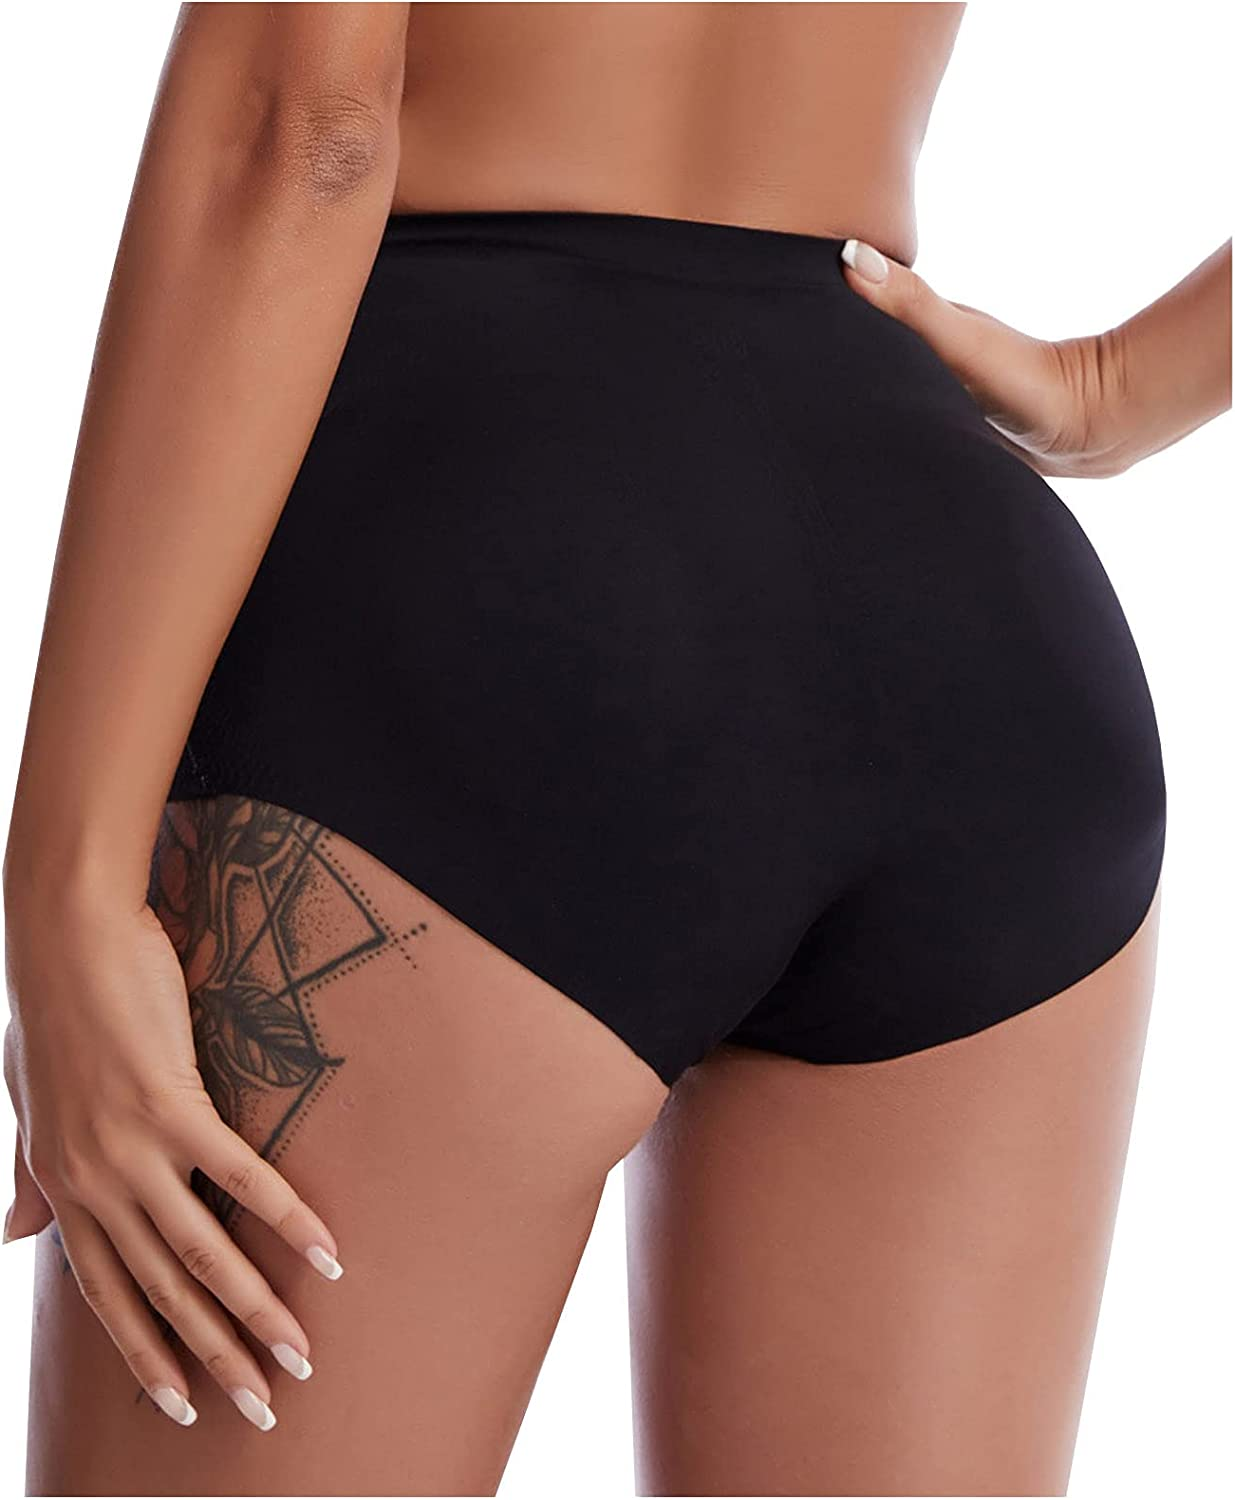 Exposed Buttock Shapewear for Women Tummy Control, Women's Seamless Butt Lifter Body Shaper Pants Sexy Hip Lifting Panties